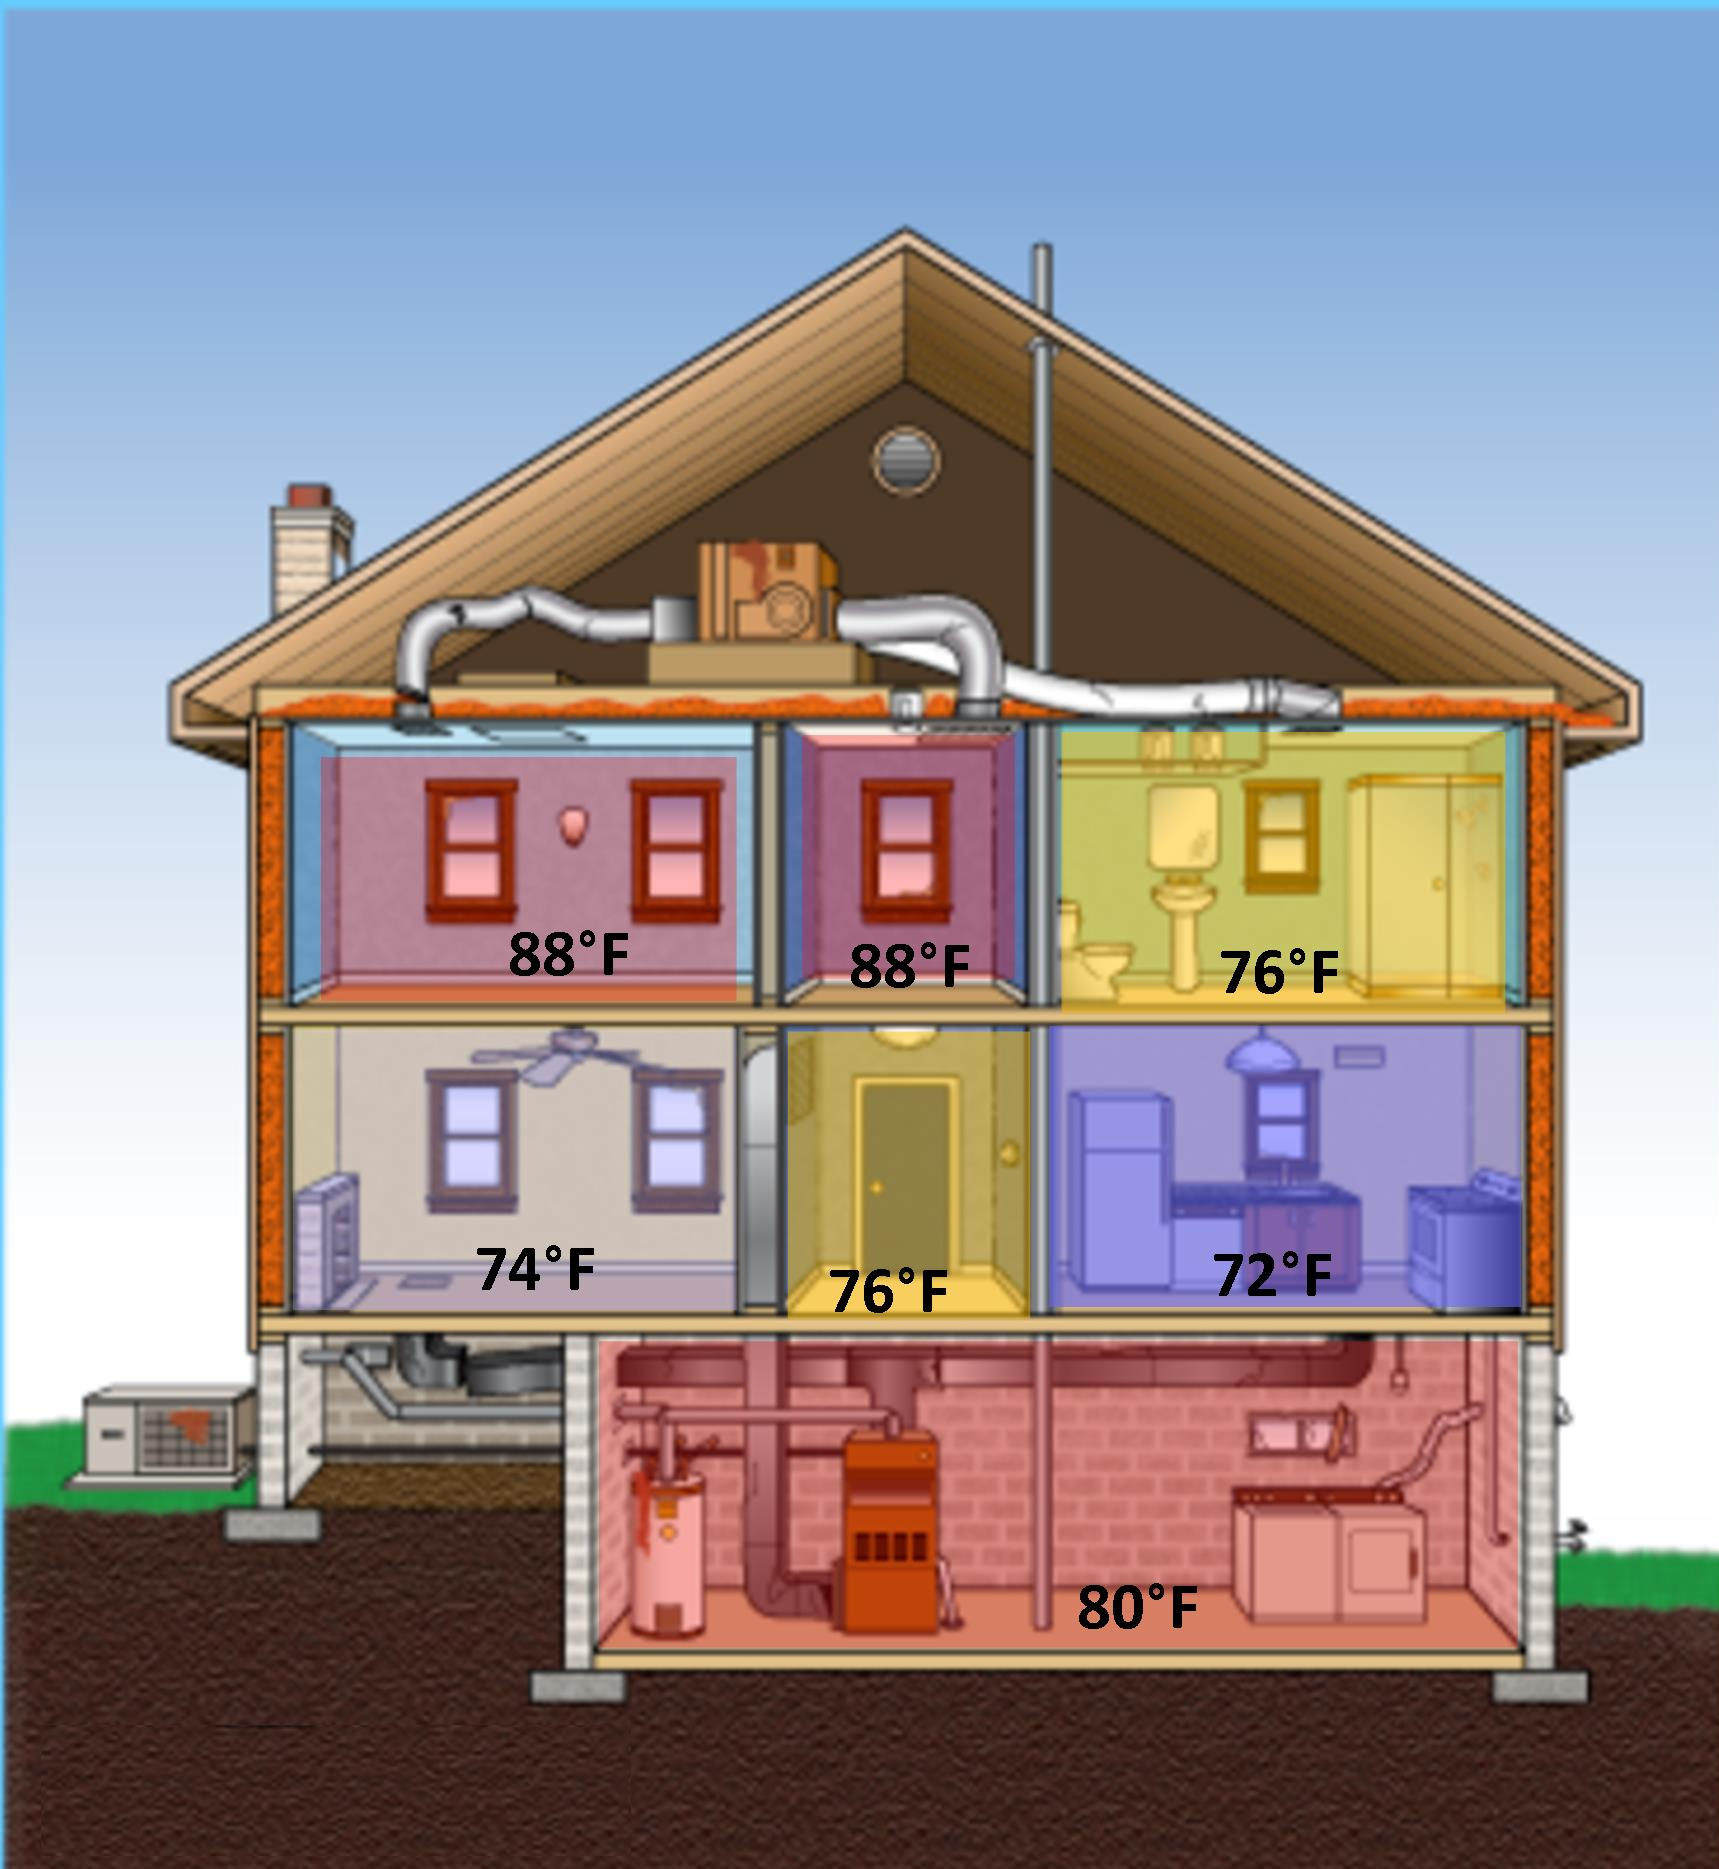 6 Benefits Of Zoning Your Home Heating System  Read Now